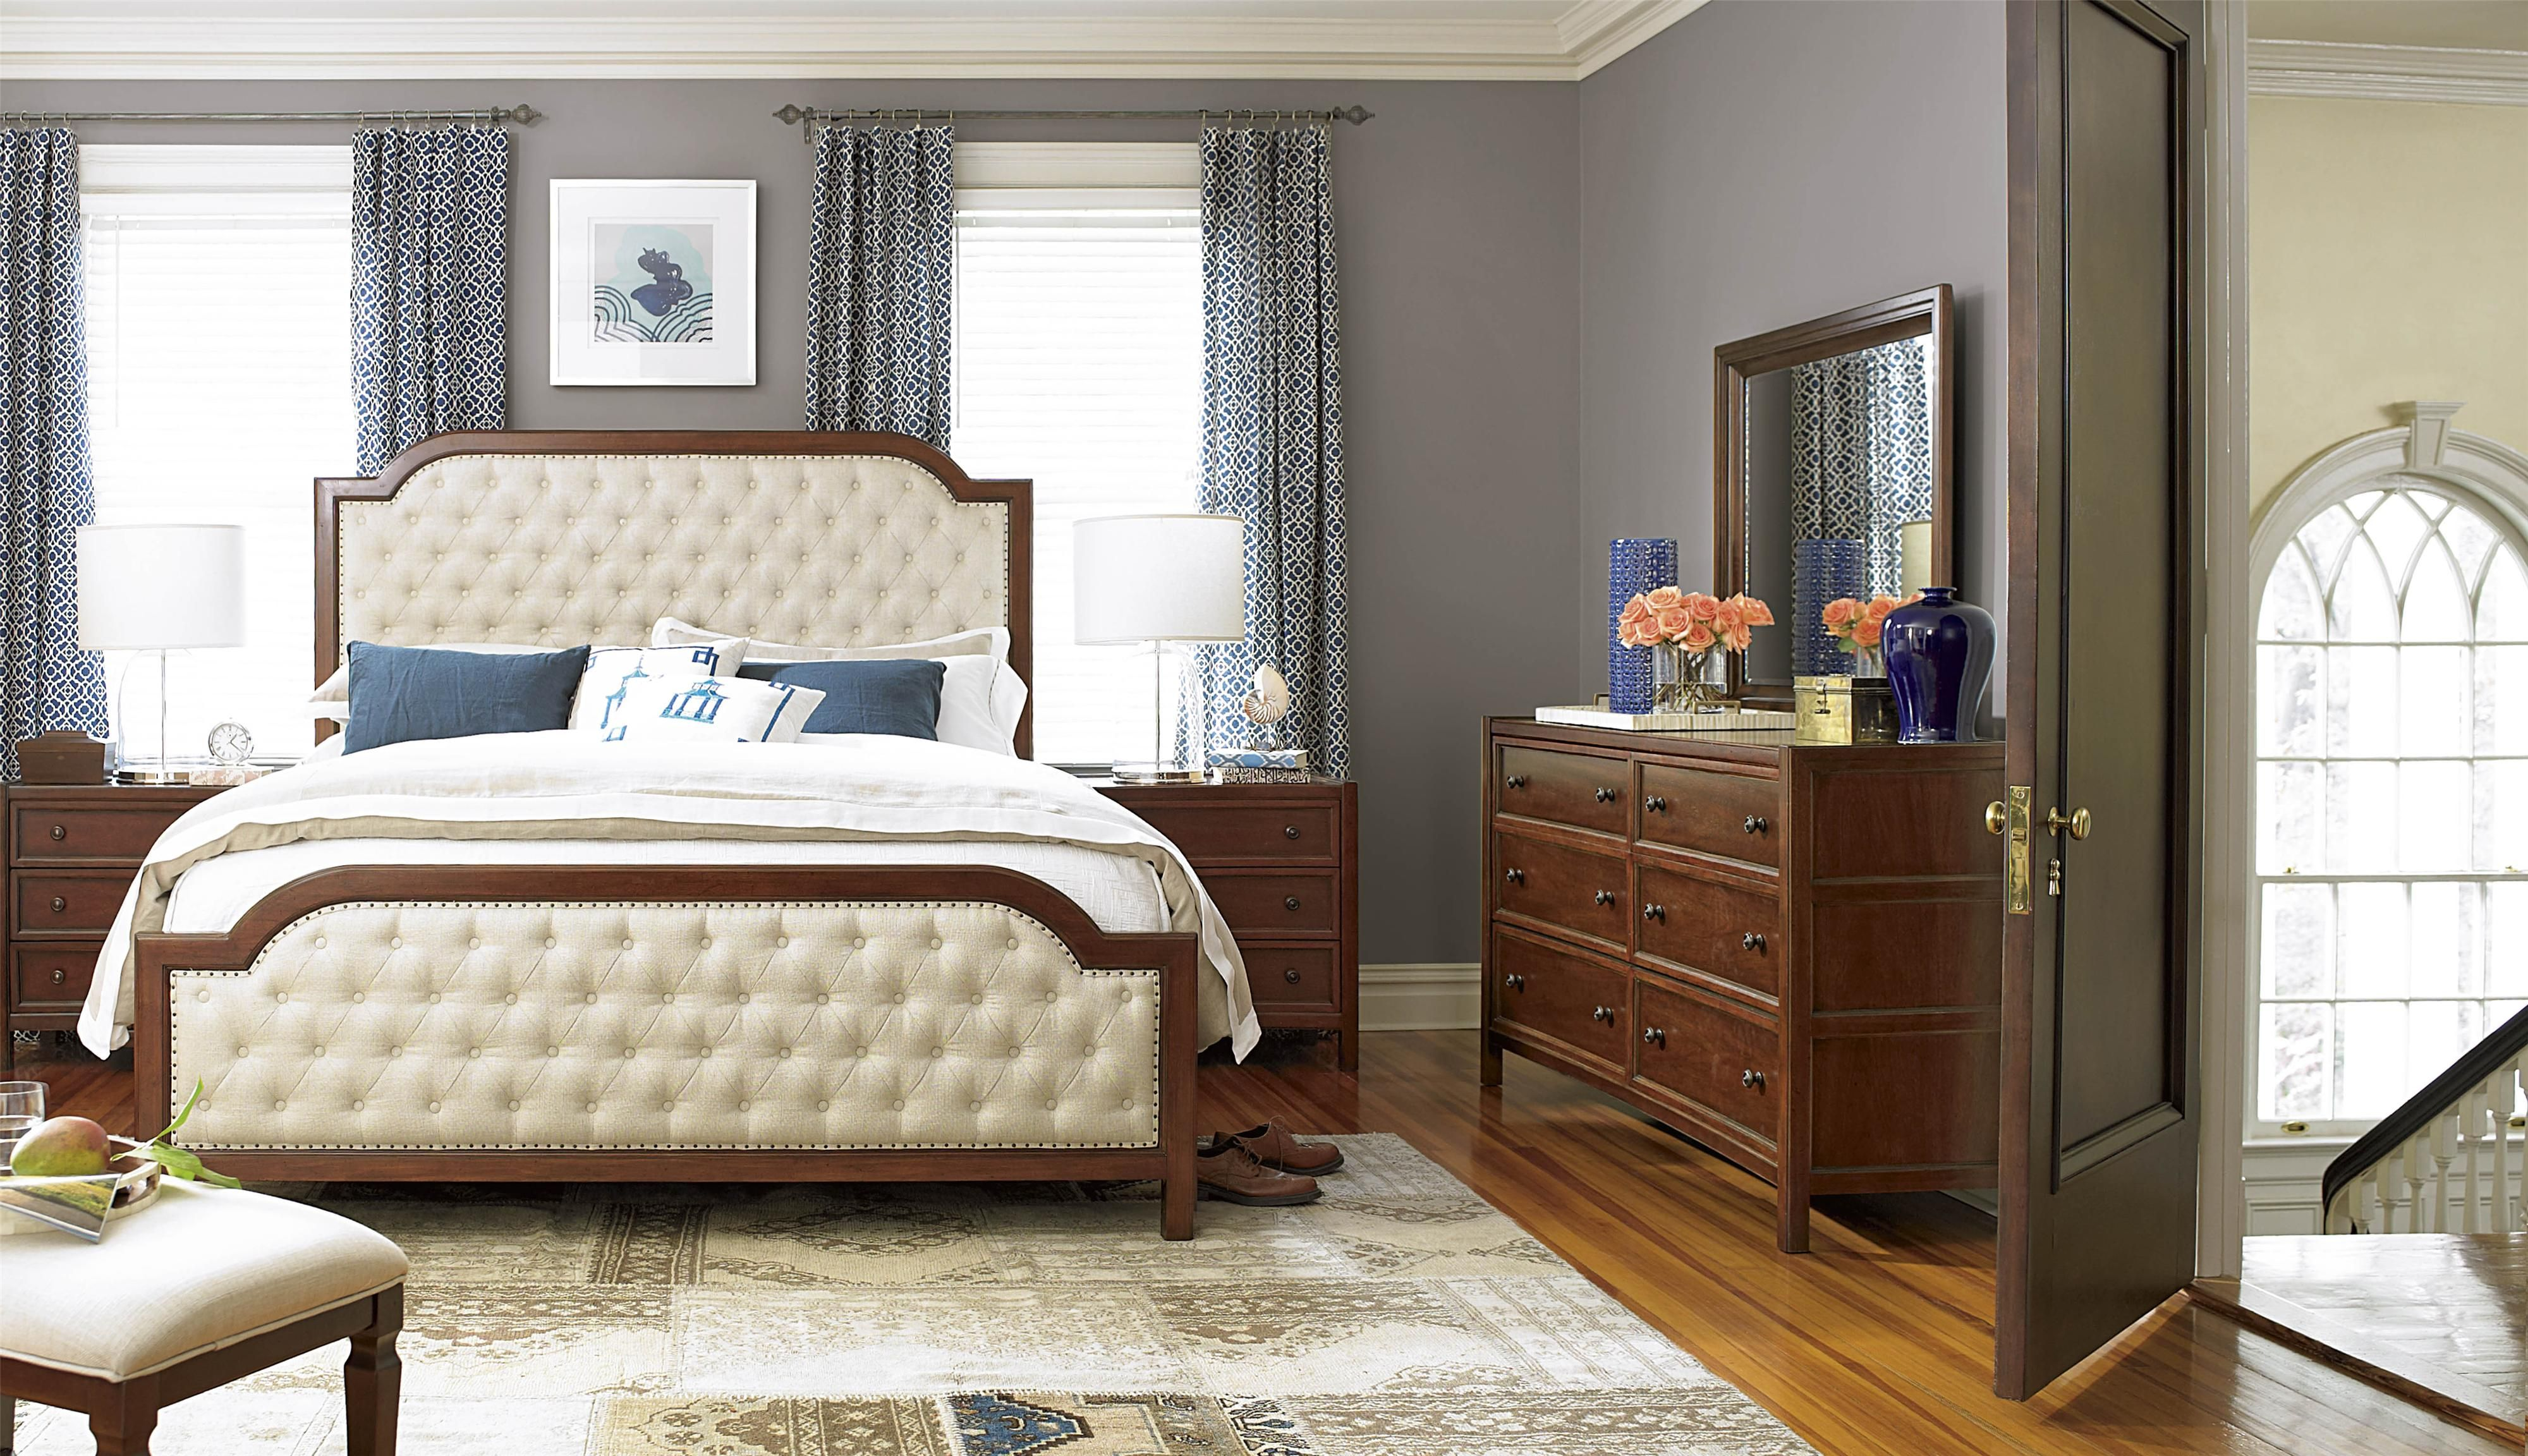 Universal Silhouette Queen Bed With Upholstered Headboard And Footboard Gardiners Furniture Headboard Footboard Baltim Universal Furniture Furniture Home